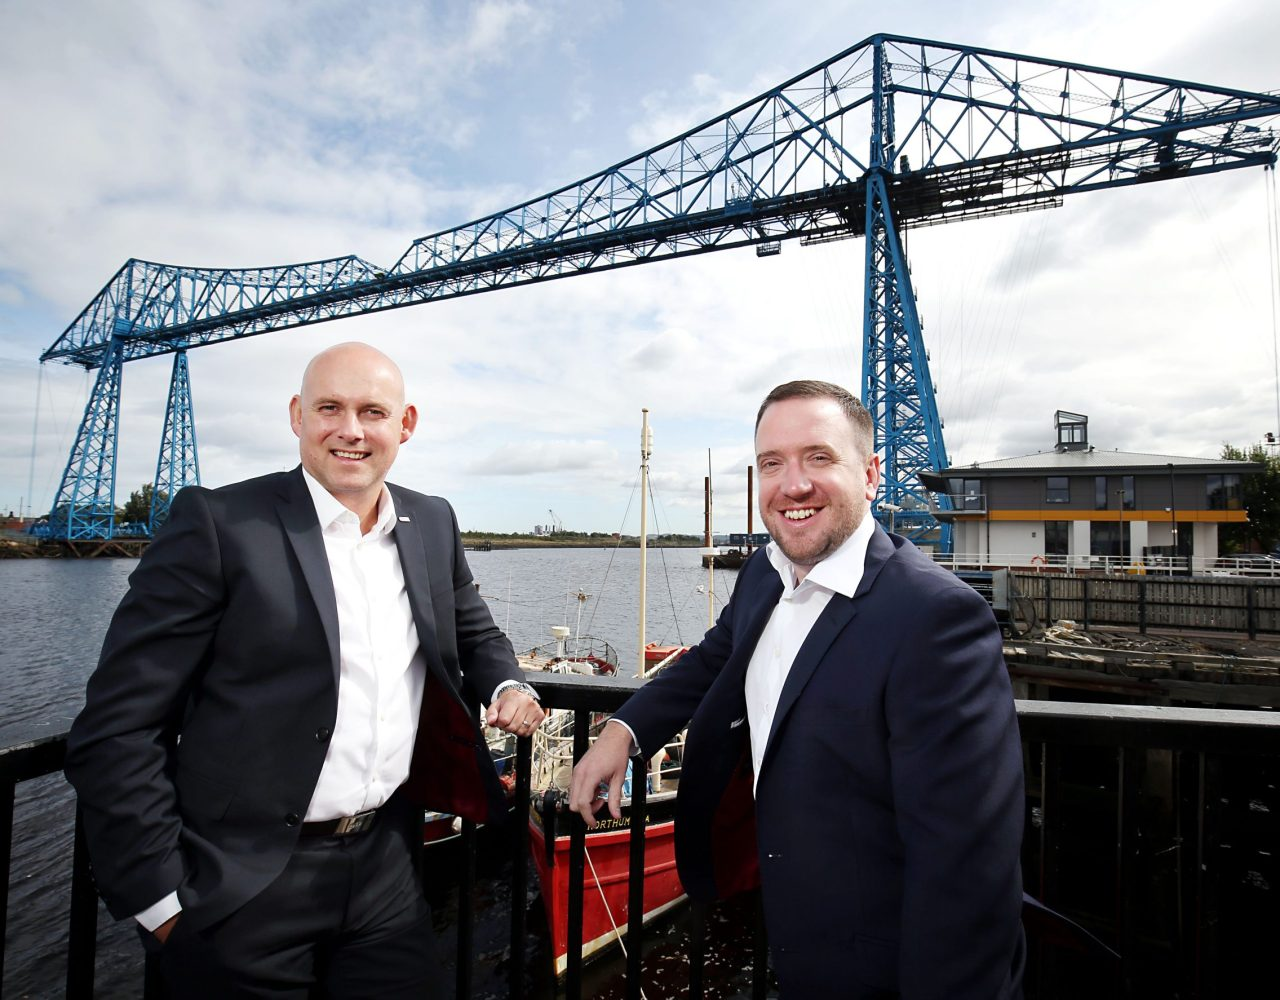 Aspire announces £1.2m investment in its Tees Valley network